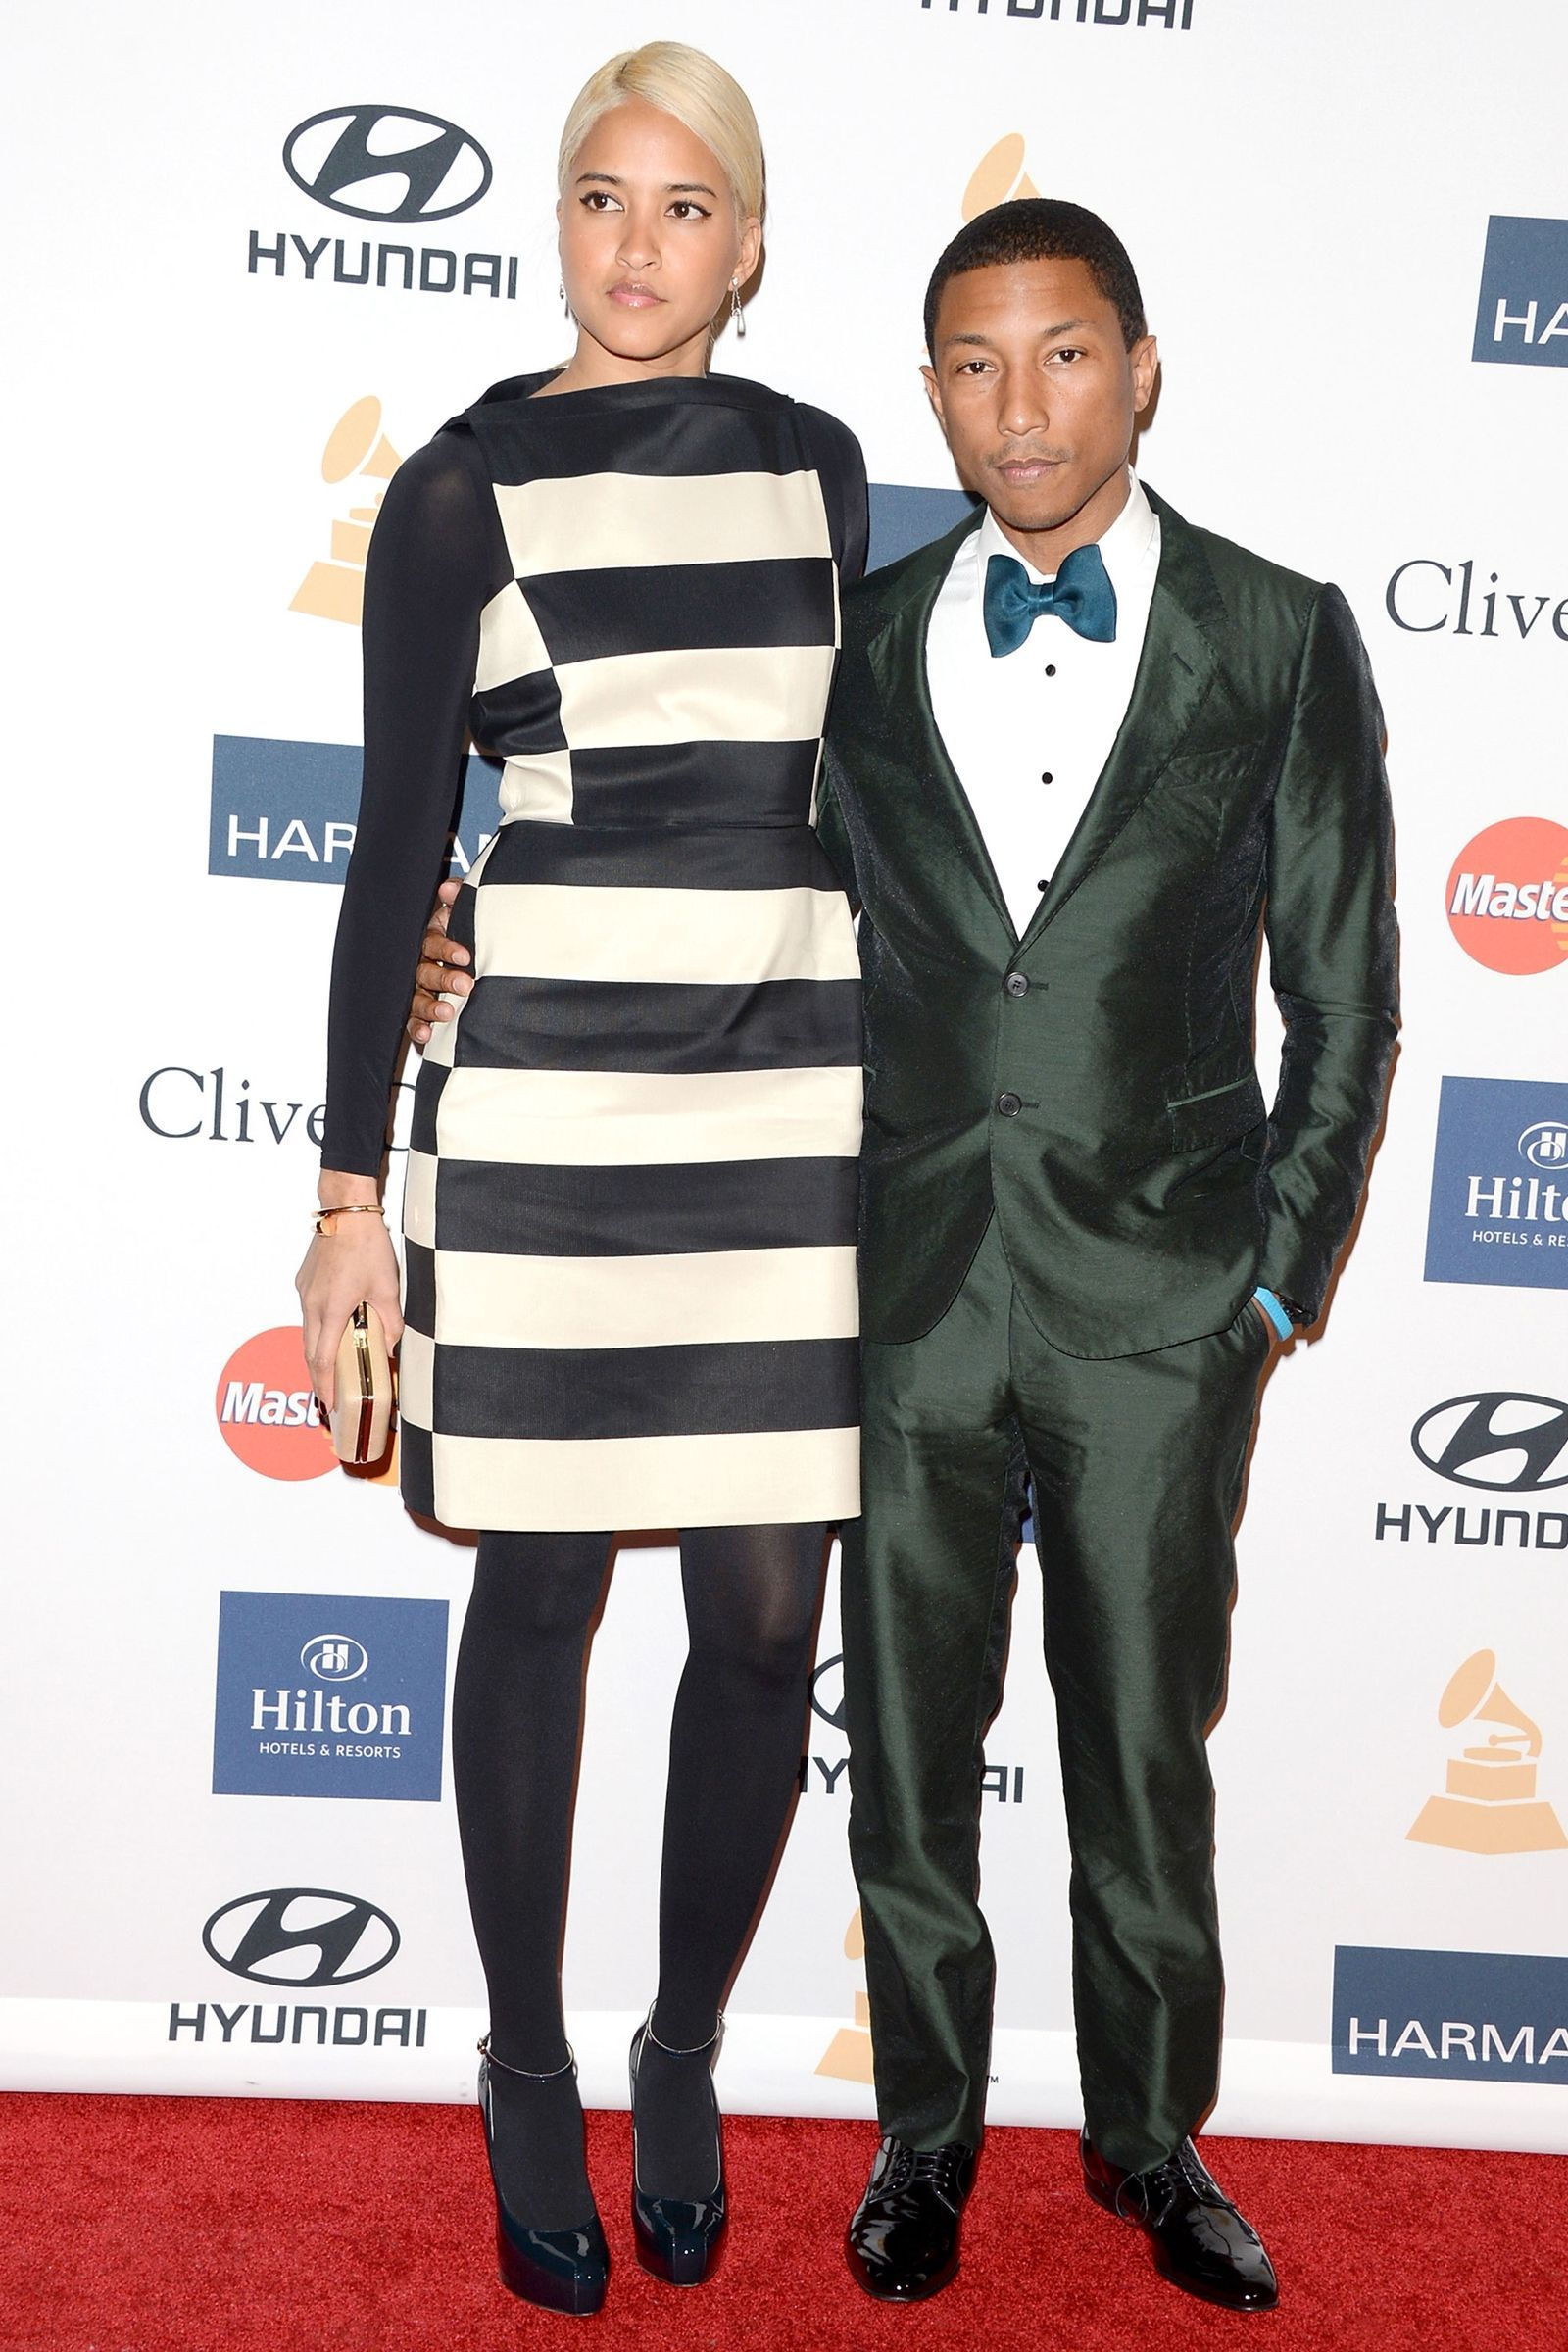 Does Size Matter? Not to These A-Listers | Black celebrity